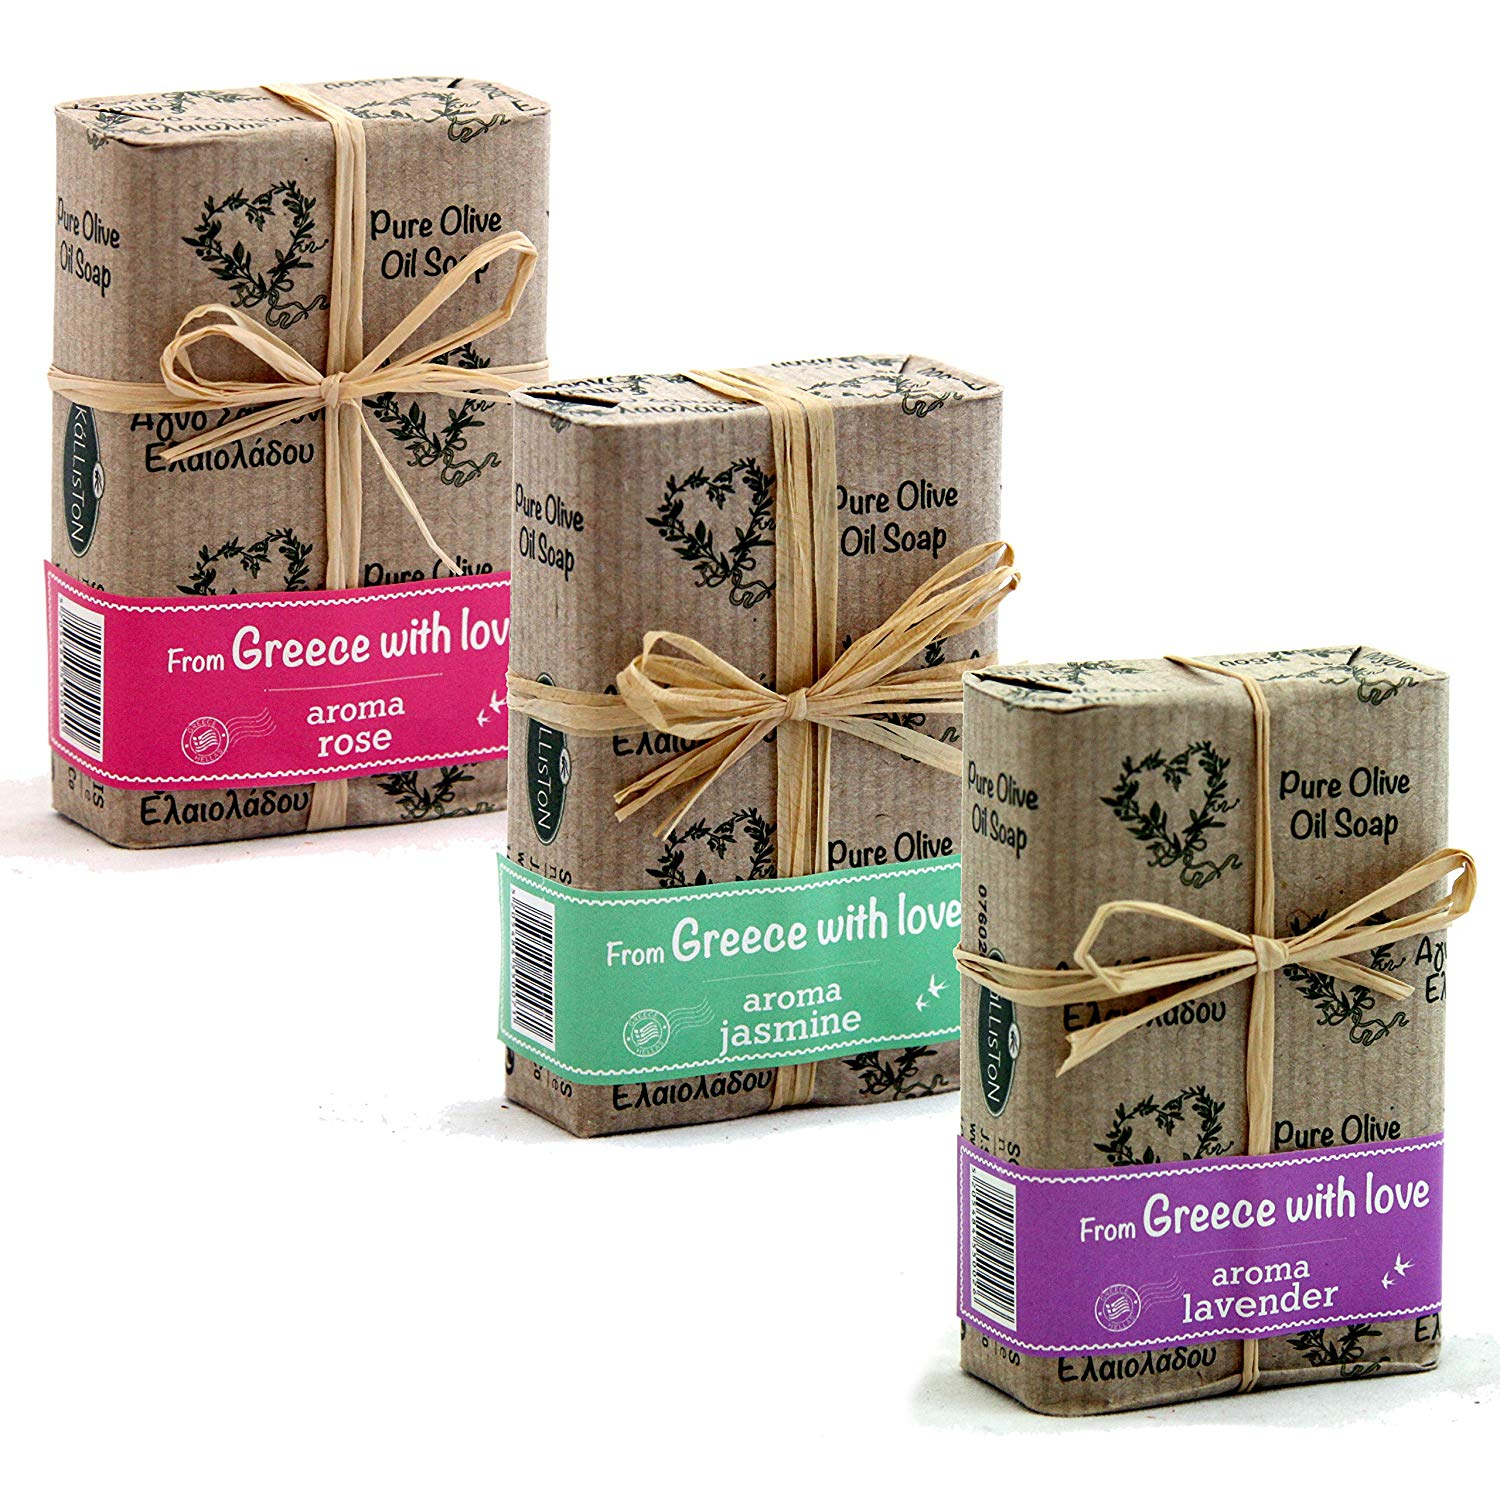 Kalliston | Olive Oil Soaps | Rose, Jasmine, & Lavender Aromas | Bows Gift Set | All Natural Soaps | Made in Ancient Crete, Greece